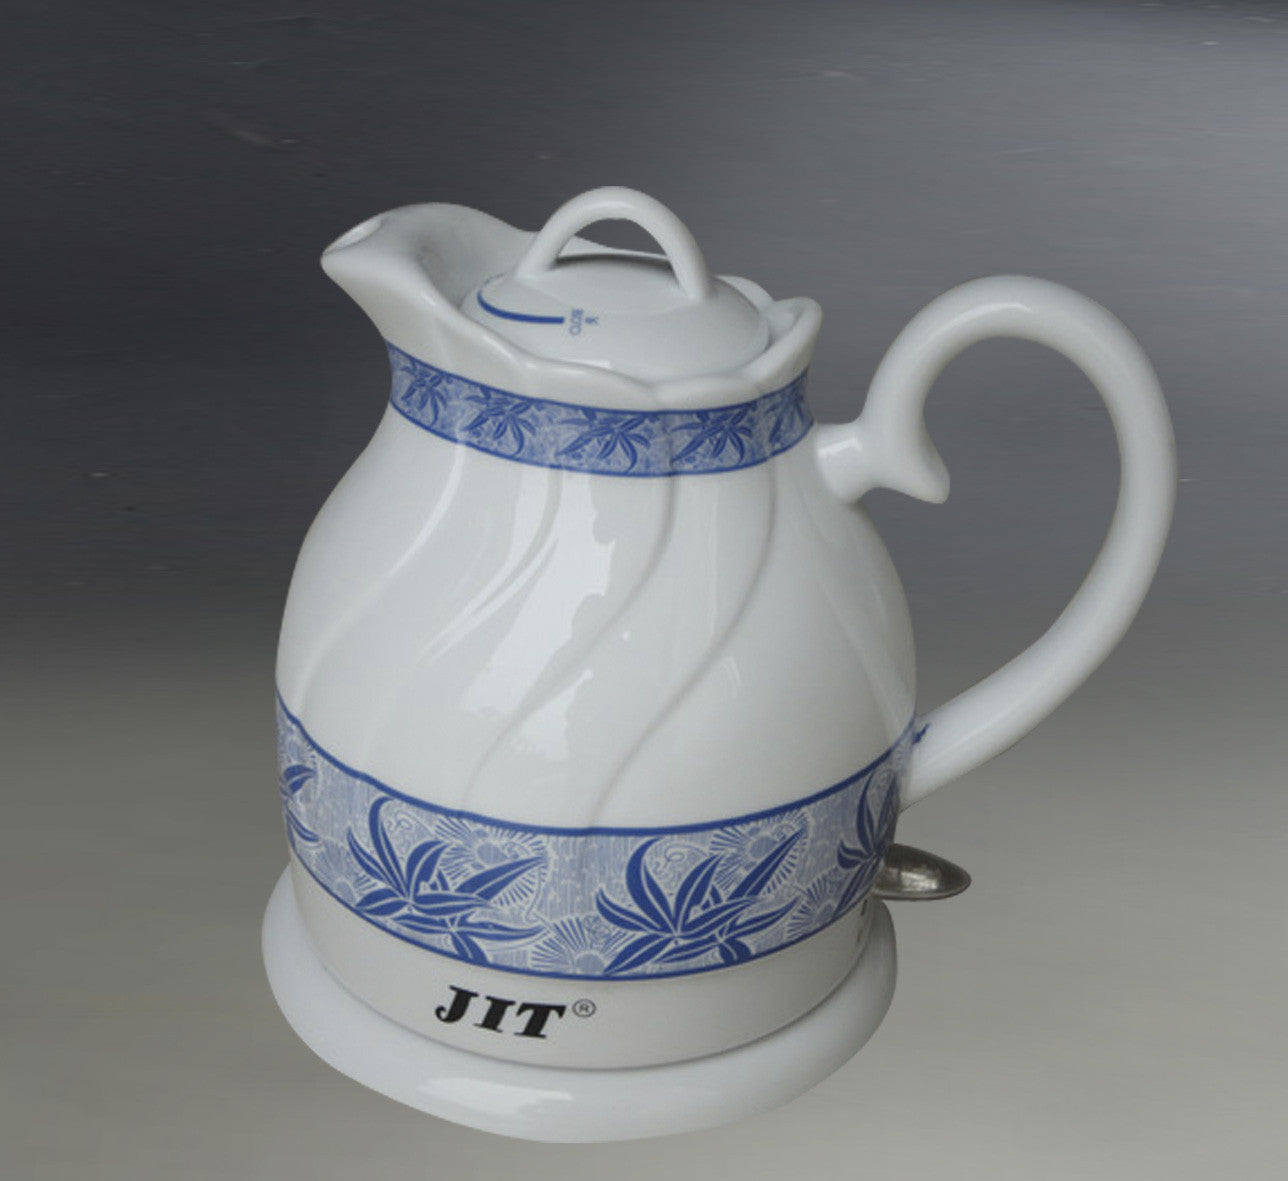 Porcelain Electric Kettle ~ Other home decor porcelain electric kettle was listed